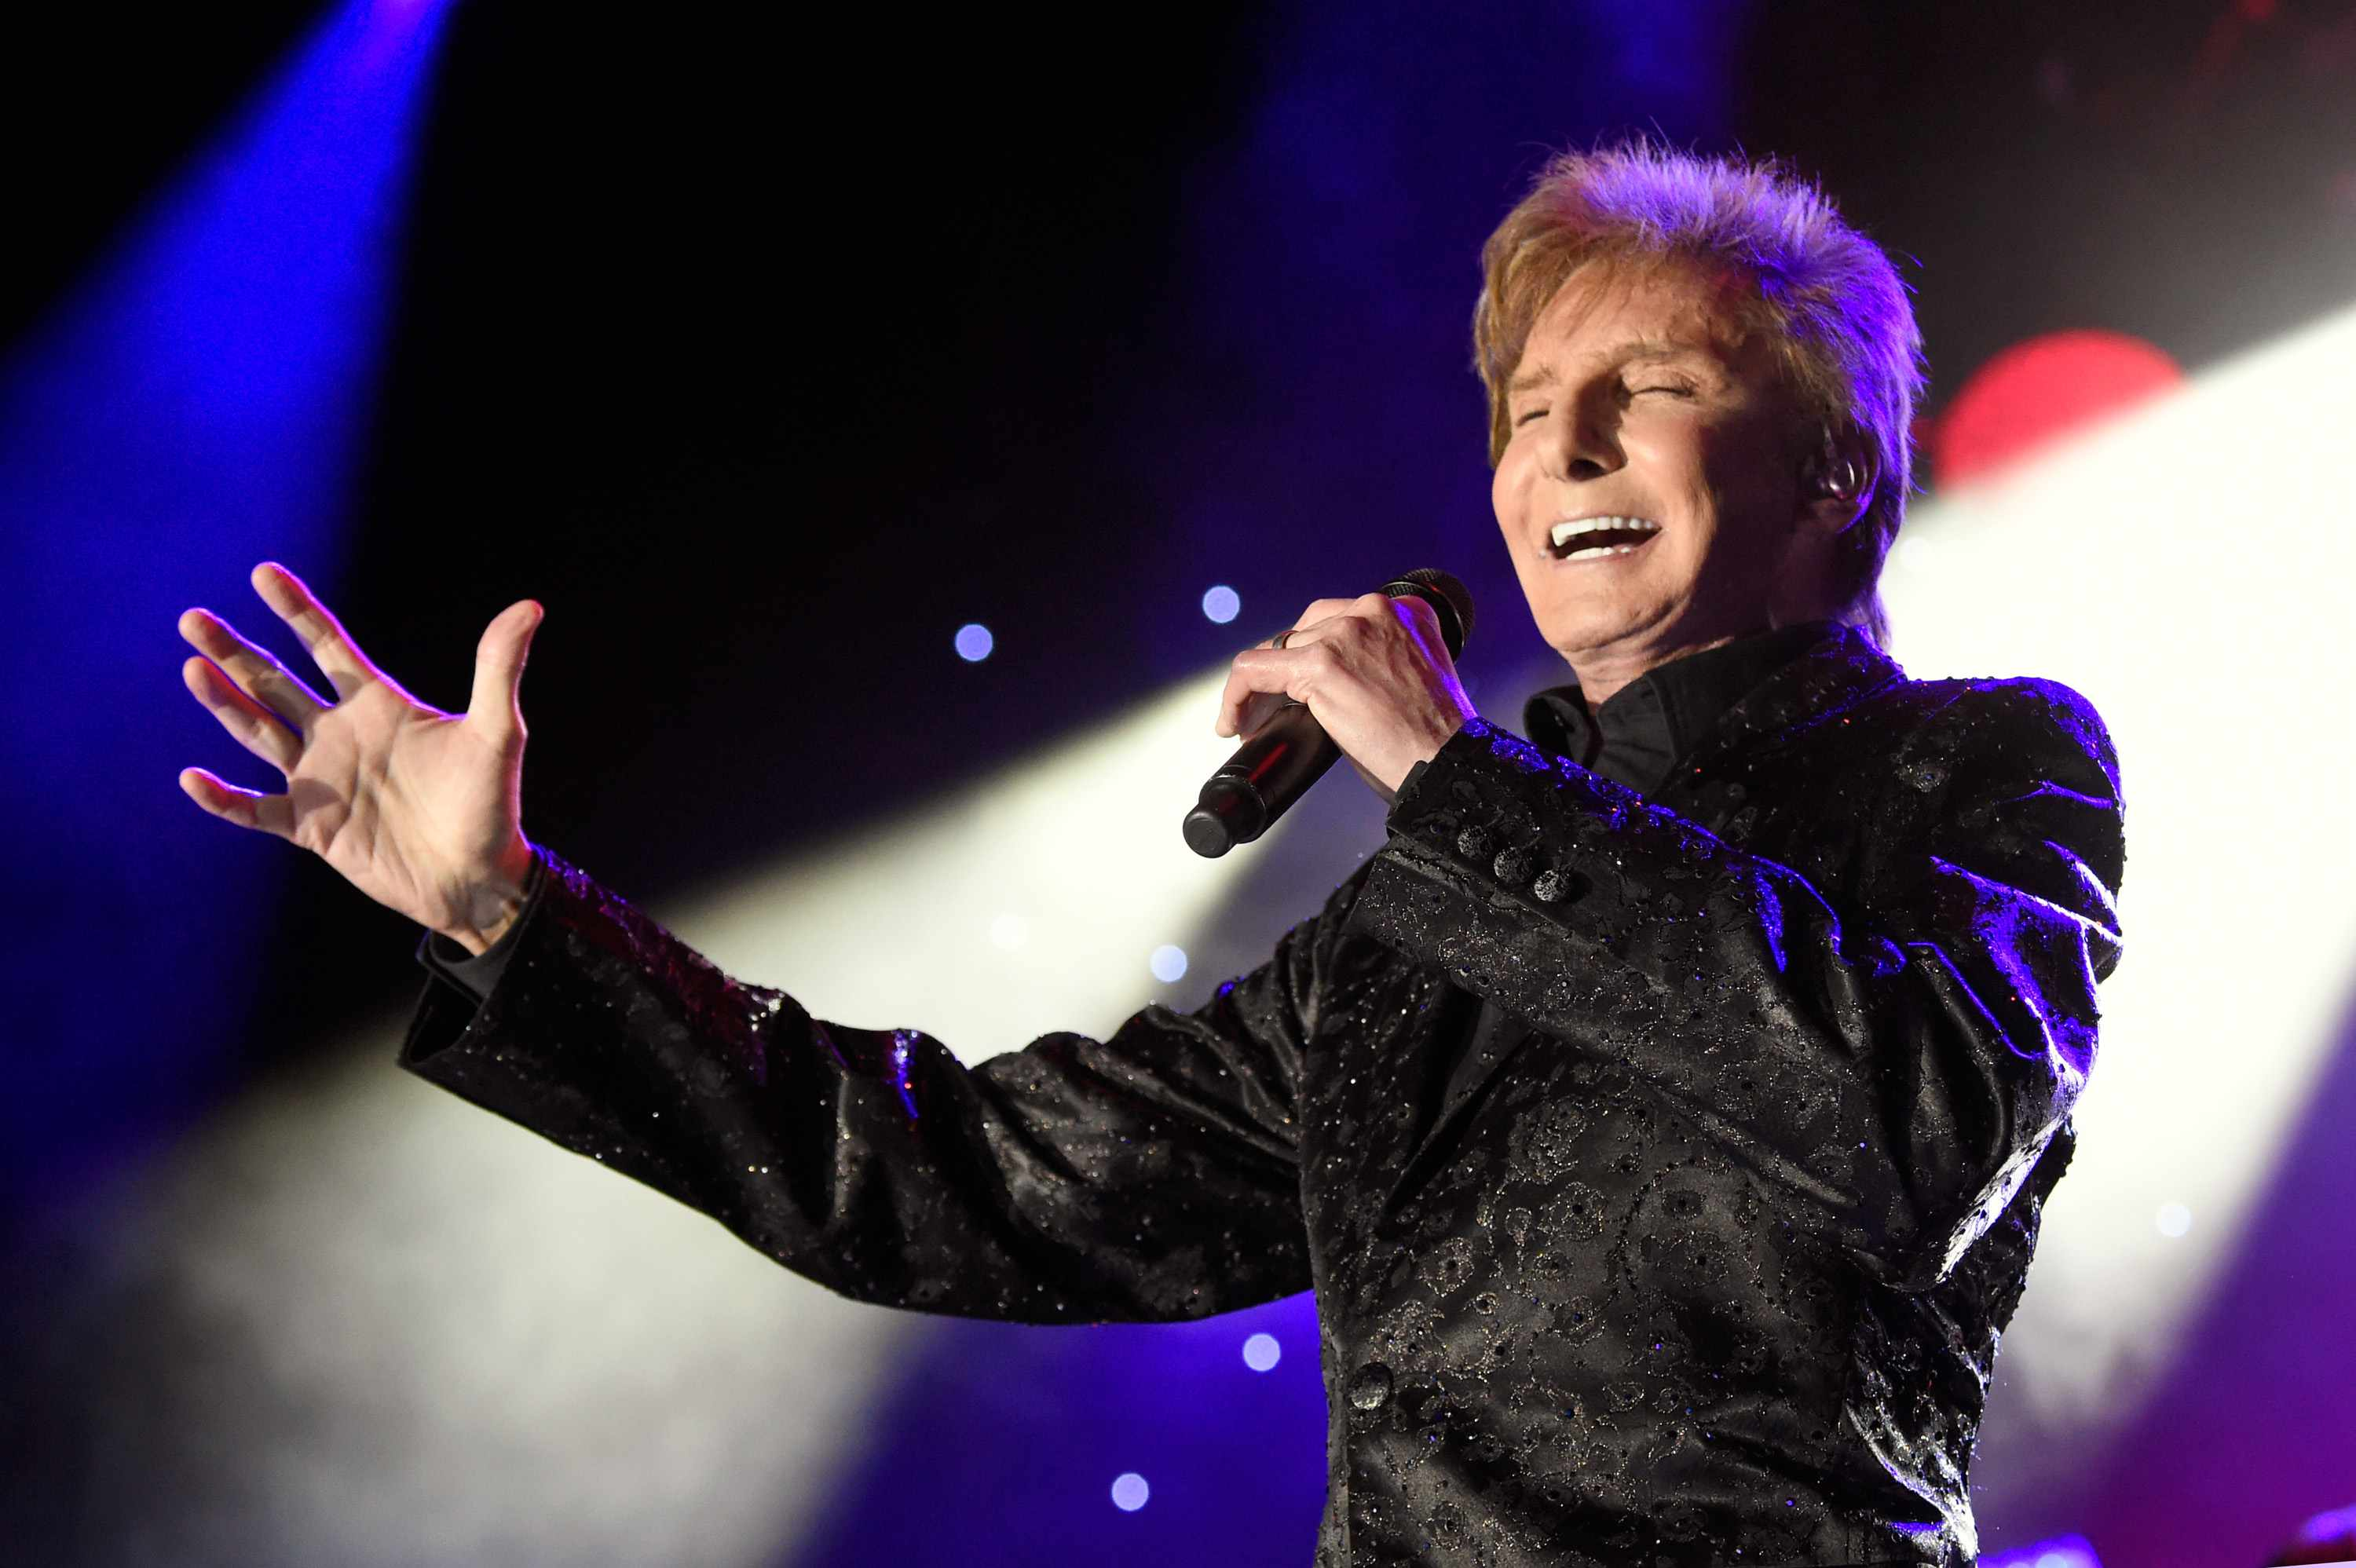 Recording artist Barry Manilow performs onstage during the Clive Davis and Recording Academy Pre-GRAMMY Gala and GRAMMY Salute to Industry Icons Honoring Jay-Z on January 27, 2018 in New York City.  (Photo by Kevin Mazur/Getty Images for NARAS)